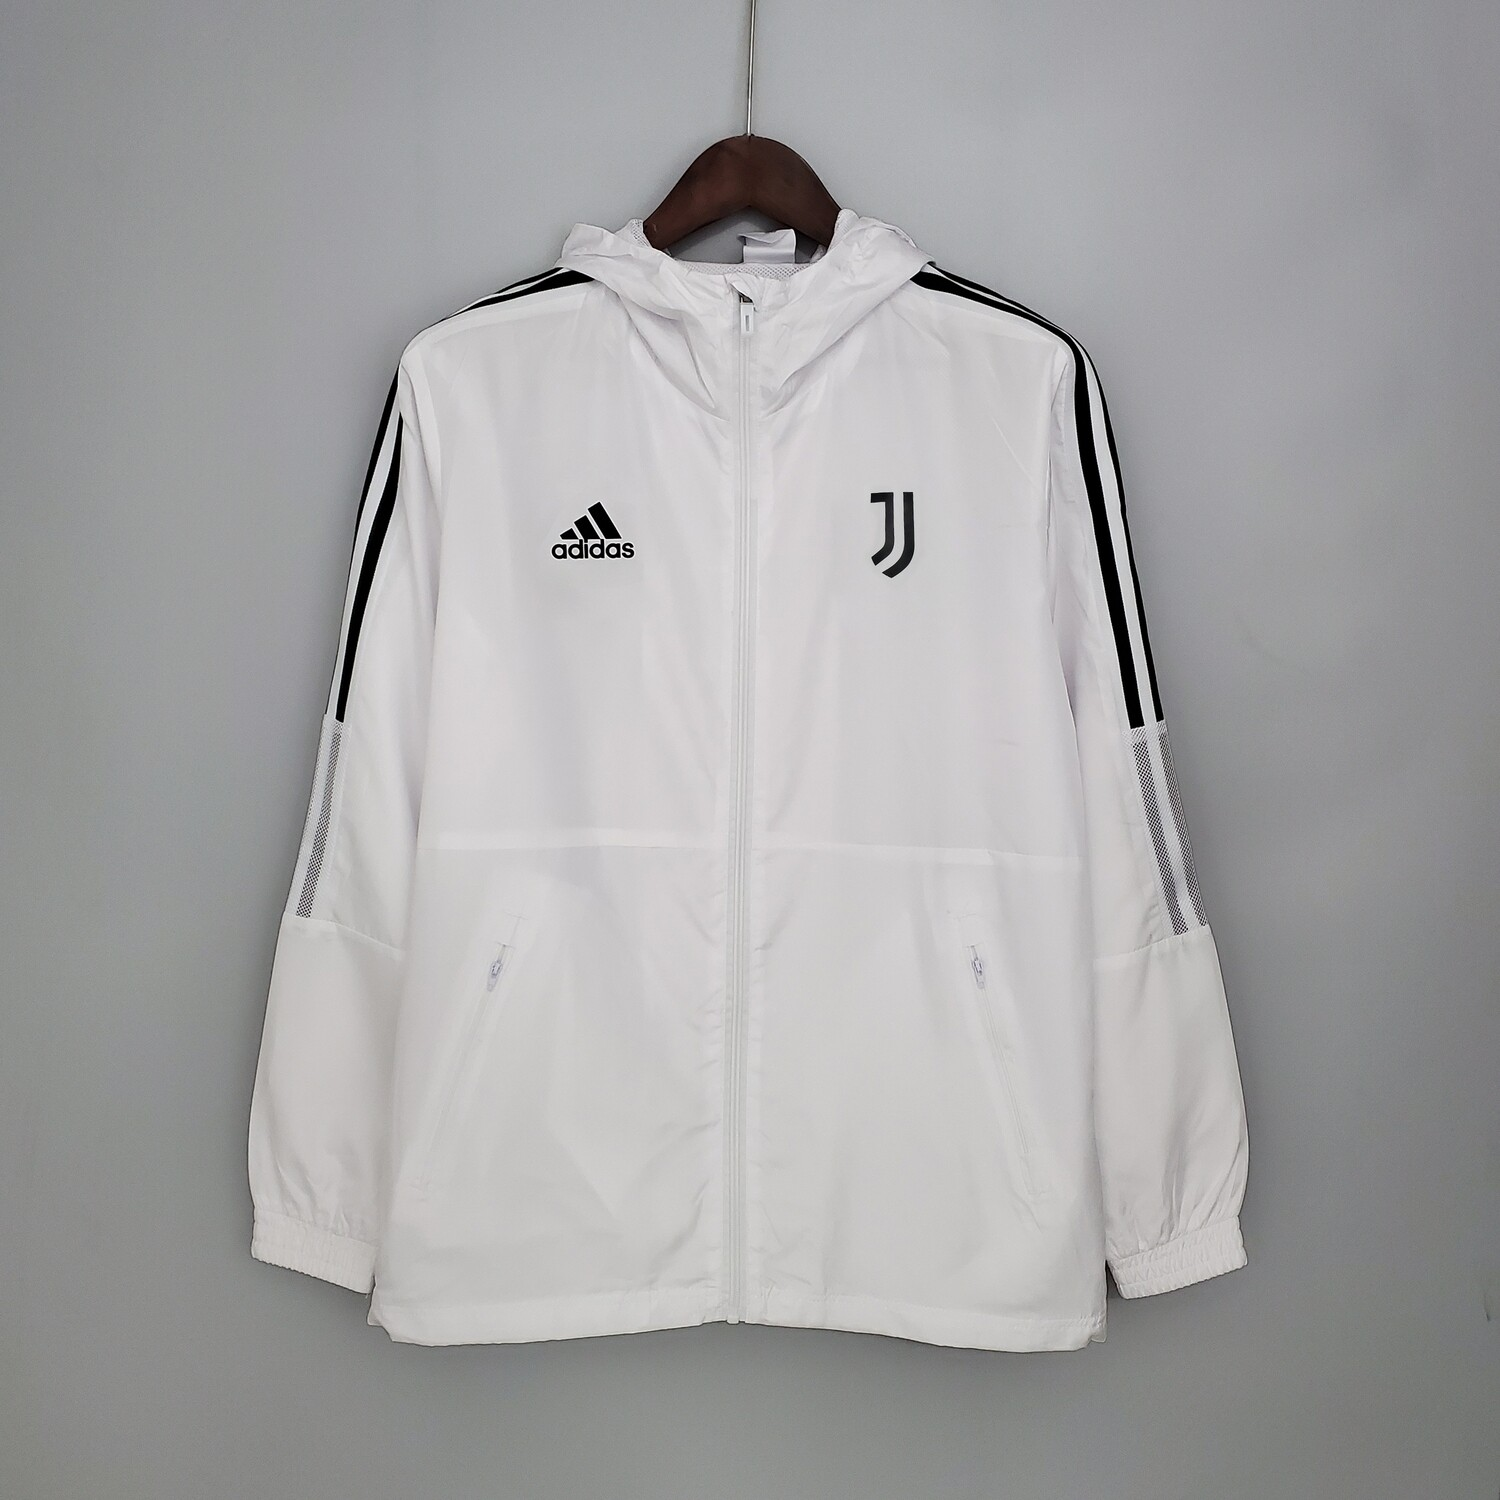 Juventus White Windbreaker 2021-22 [Pre-paid Only]